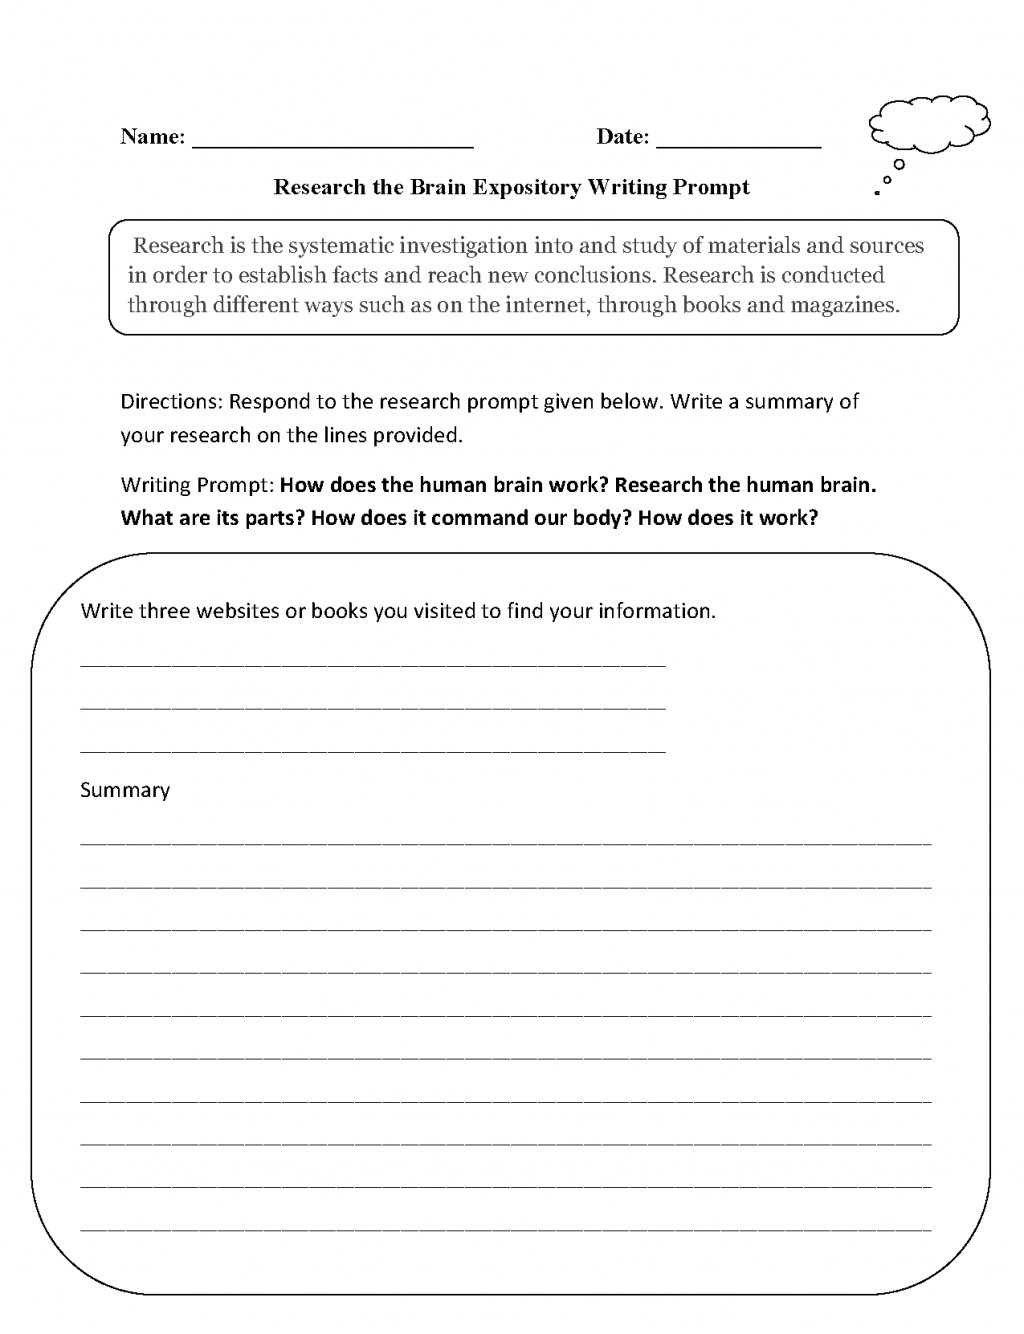 005 Prompts For Writing Essays Essay Example Research Brain Expository Best College Persuasive Opinion 4th Grade Large